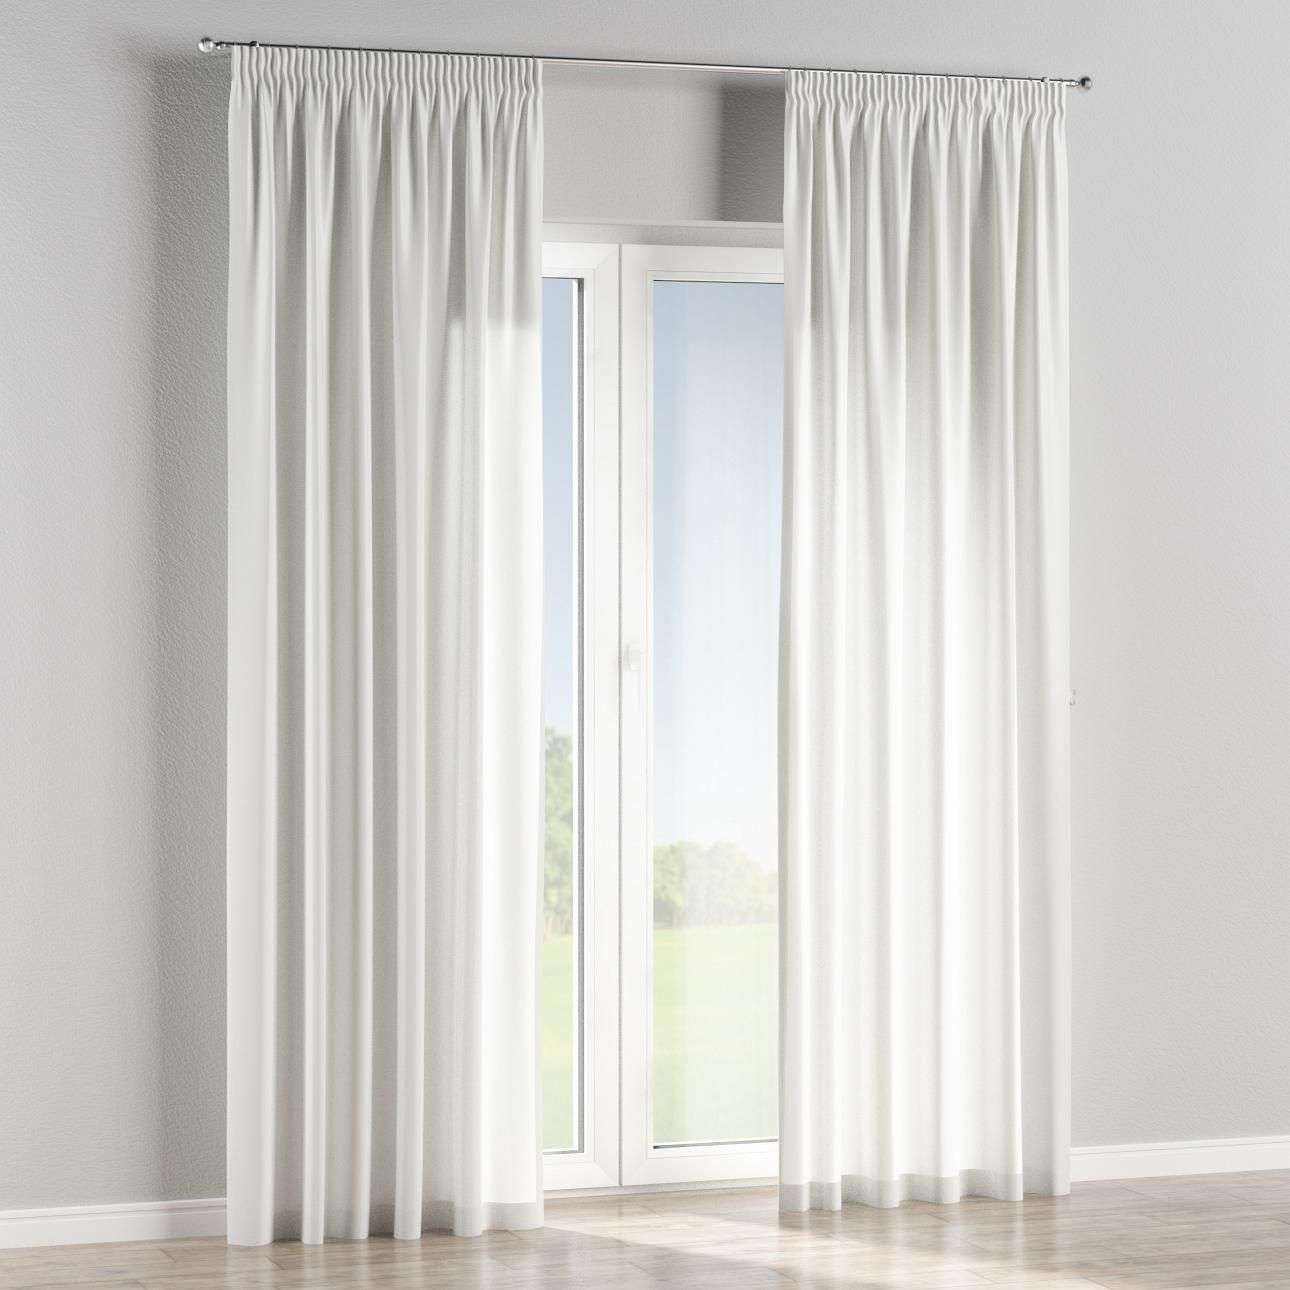 Pencil pleat lined curtains in collection Flowers, fabric: 140-89